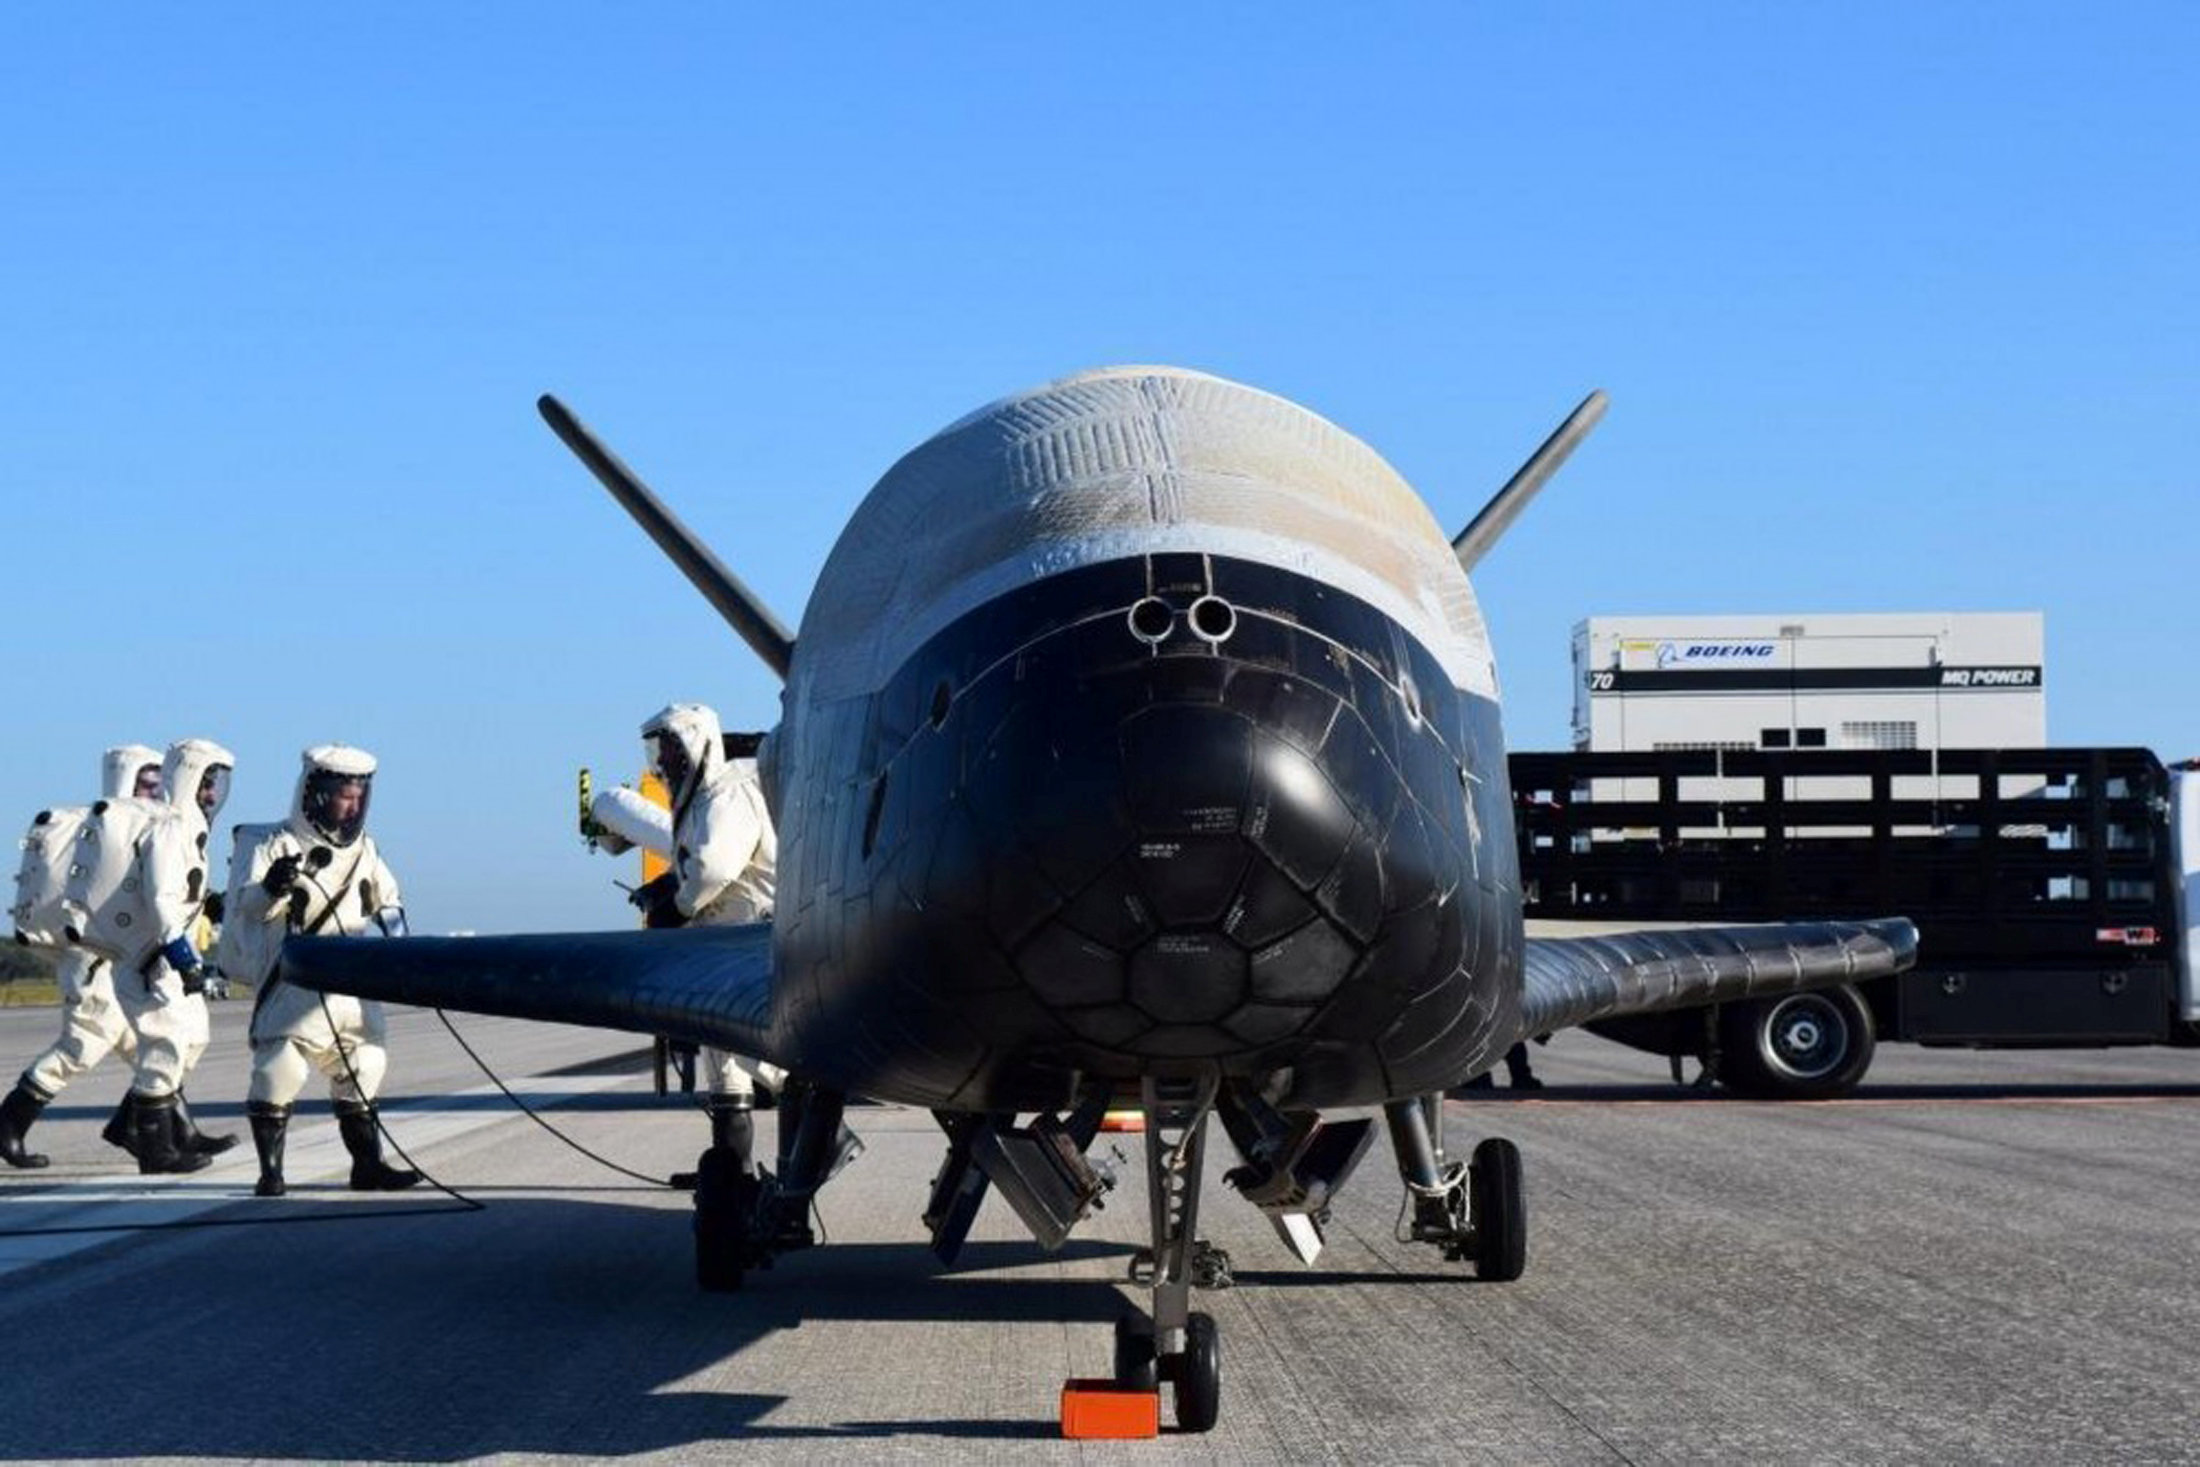 The U.S. Airforce's X-37B Orbital Test Vehicle mission 4 after landing at NASA's Kennedy Space Center Shuttle Landing Facility in Cape Canaveral, Florida, U.S.,